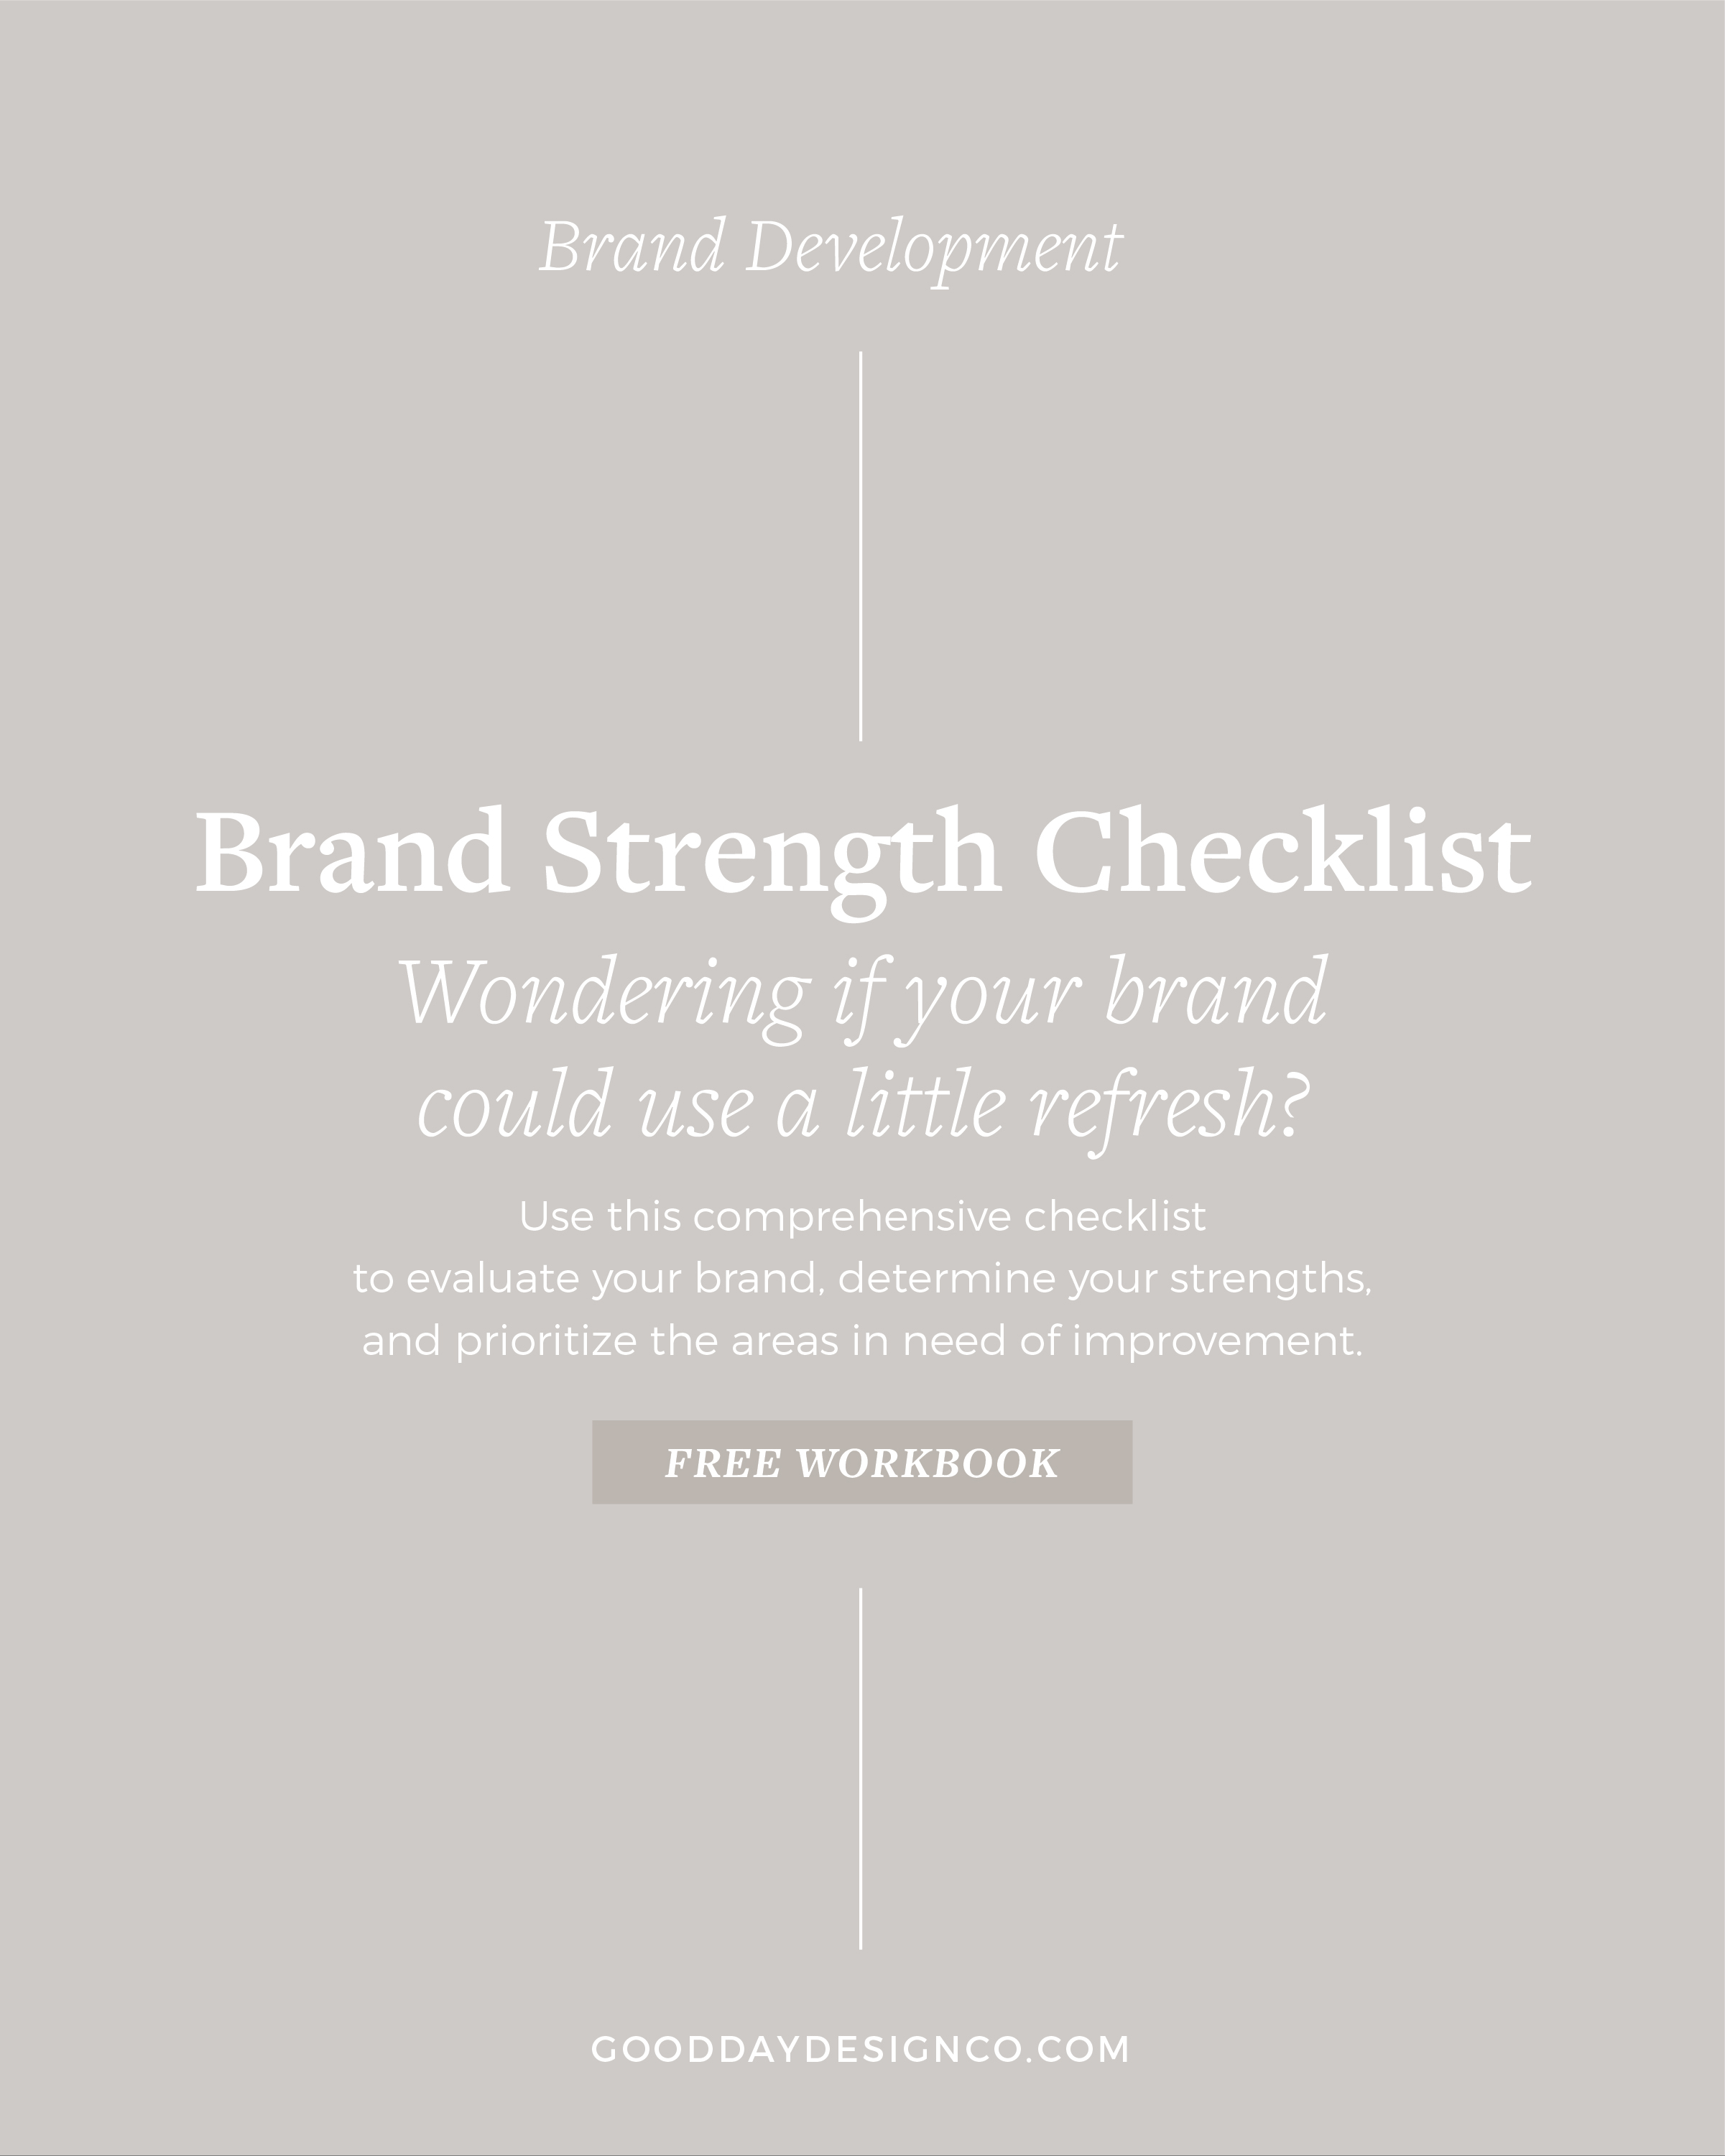 Good Day Design Co. Brand Strength Workbook-12.jpg